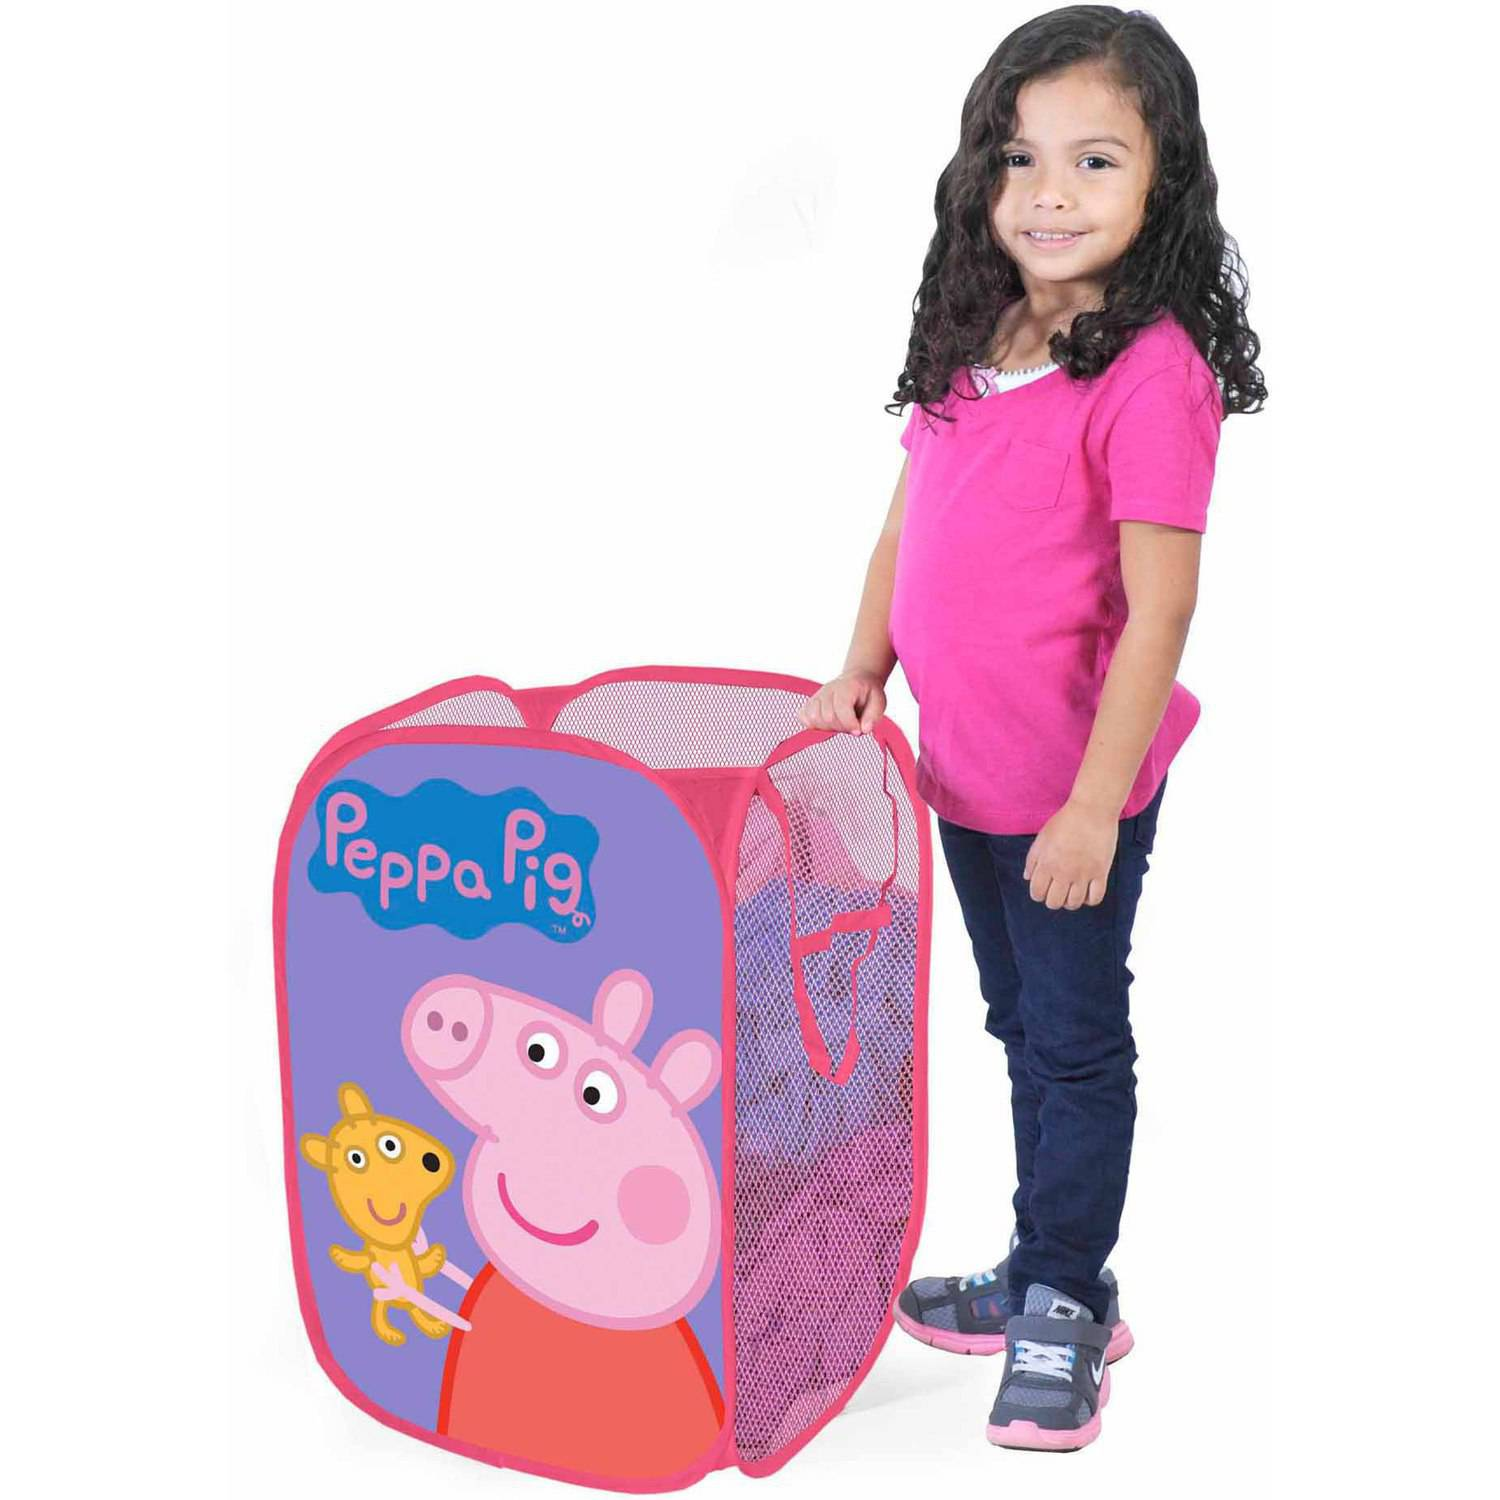 Peppa Pig Hamper